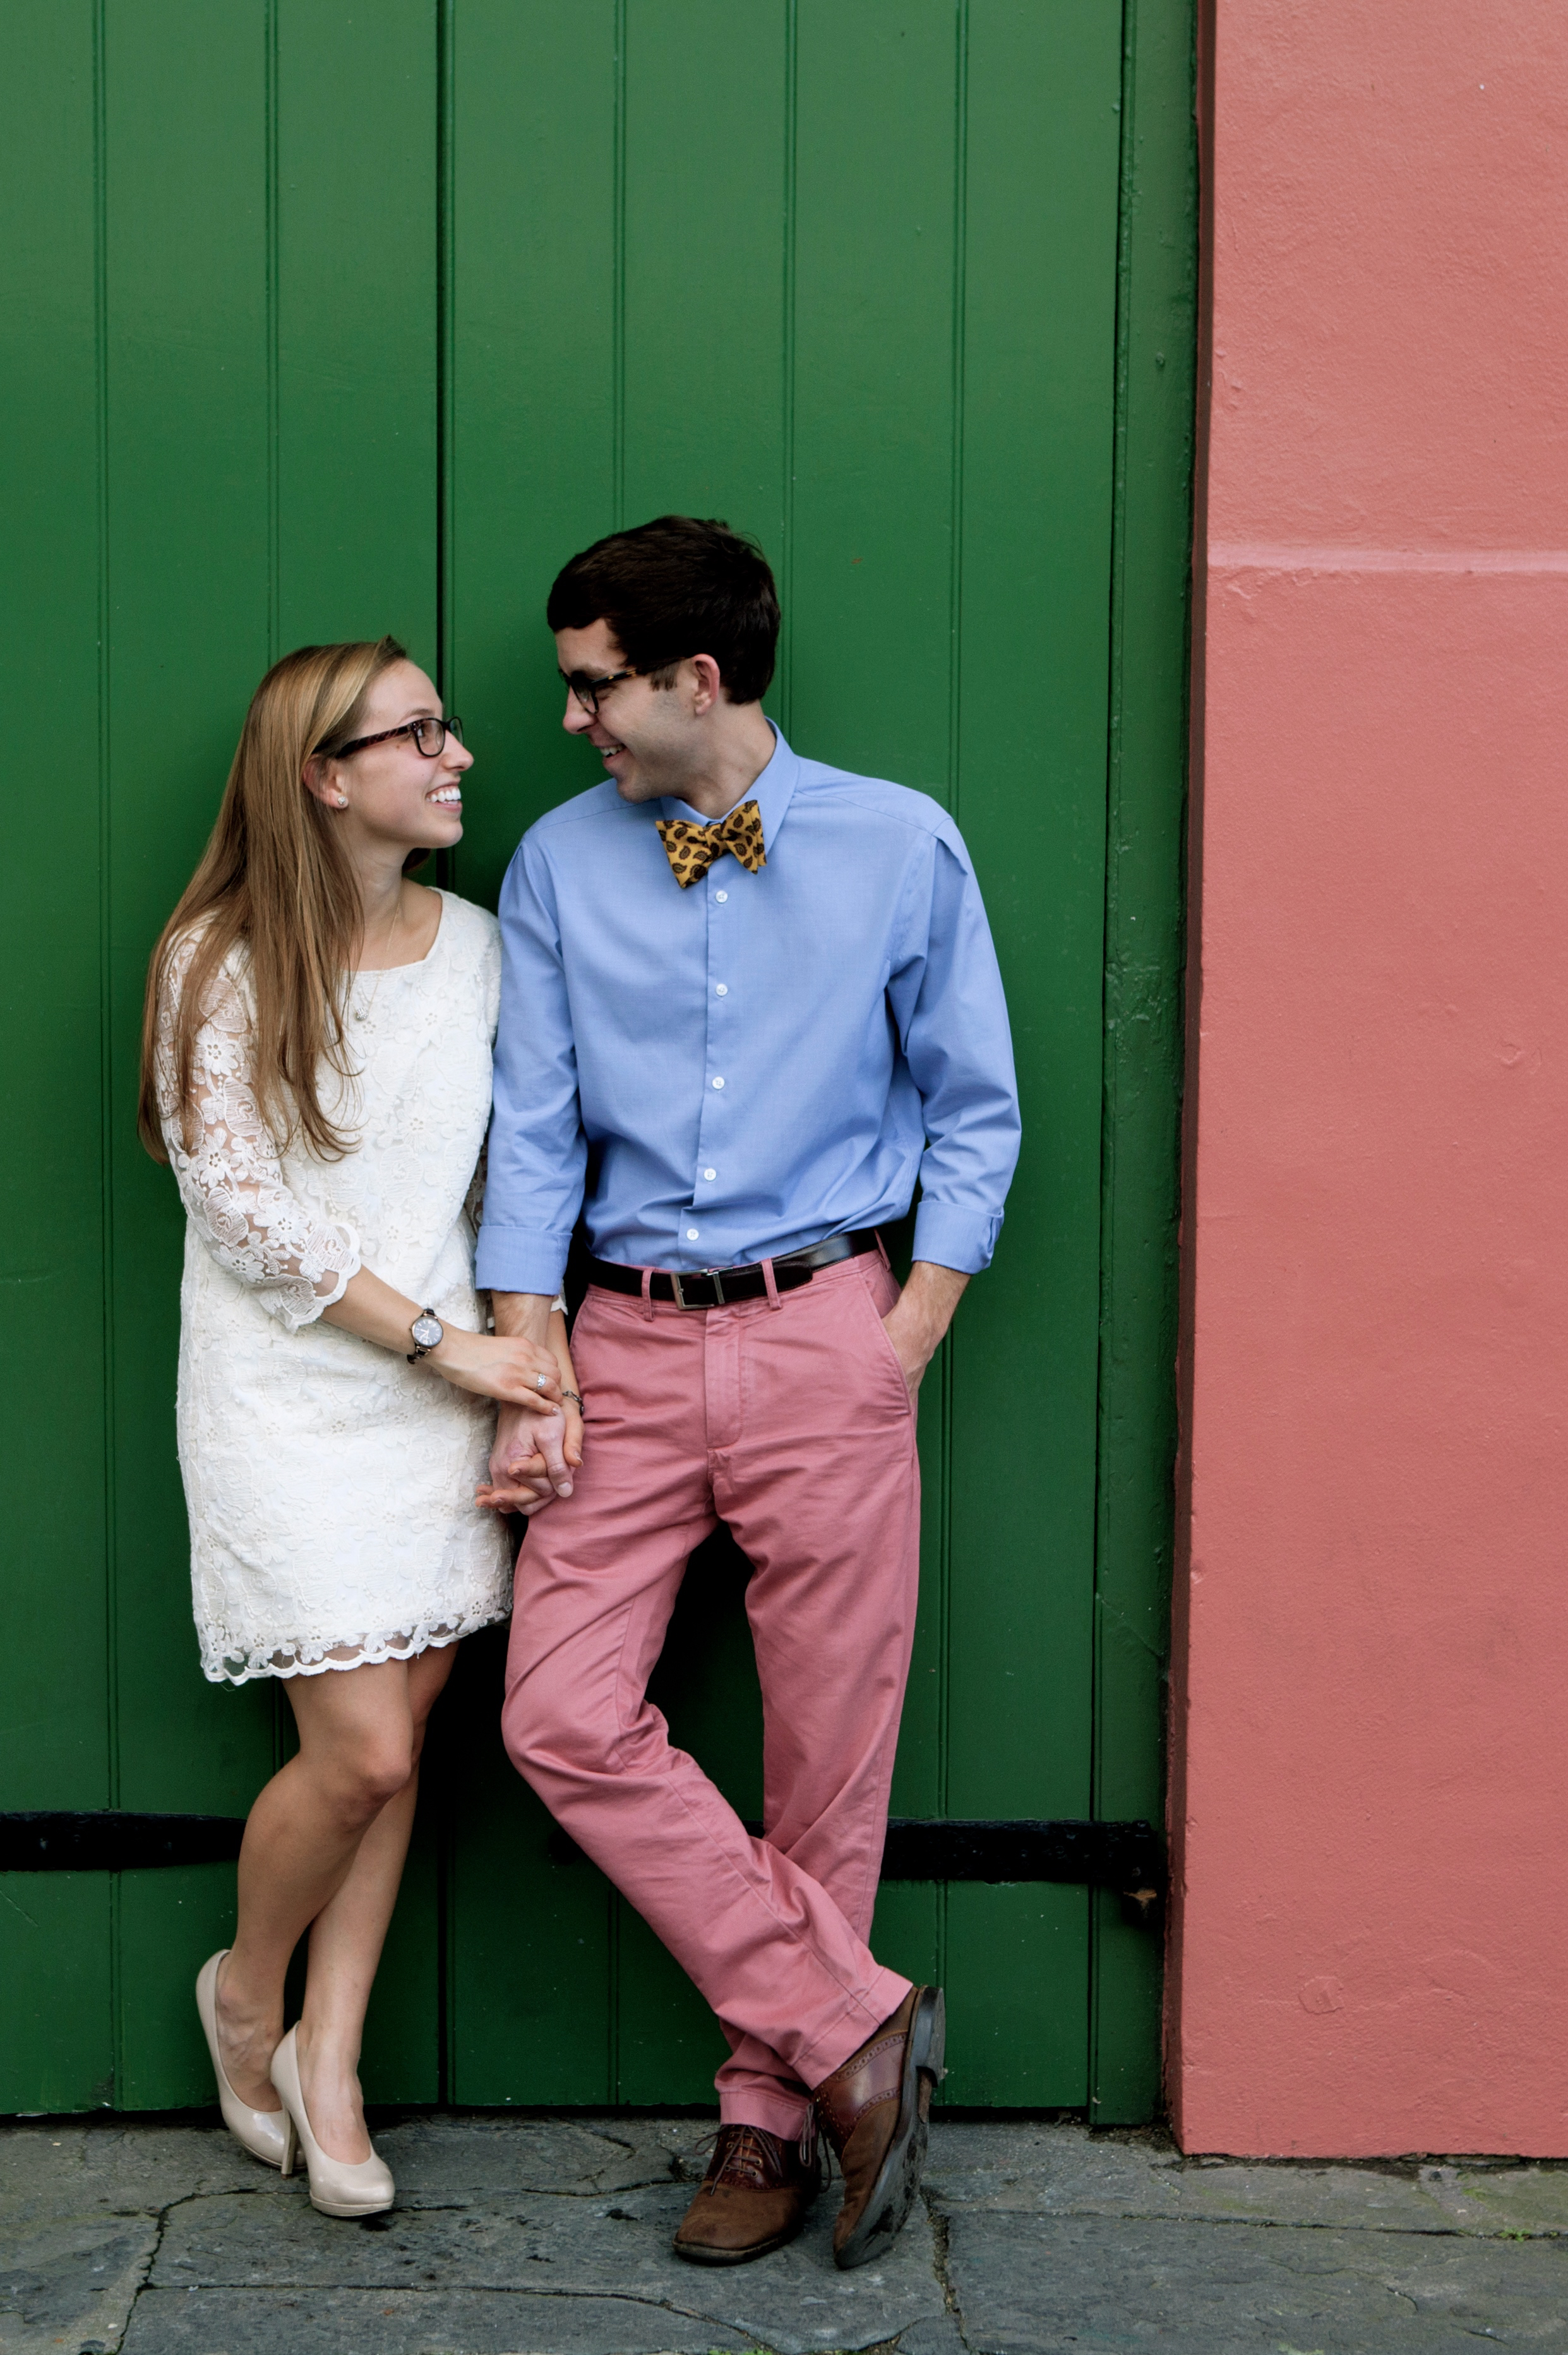 One of the cool things about living and taking engagement pics in New Orleans is that you can find houses that match your brightly colored pants.